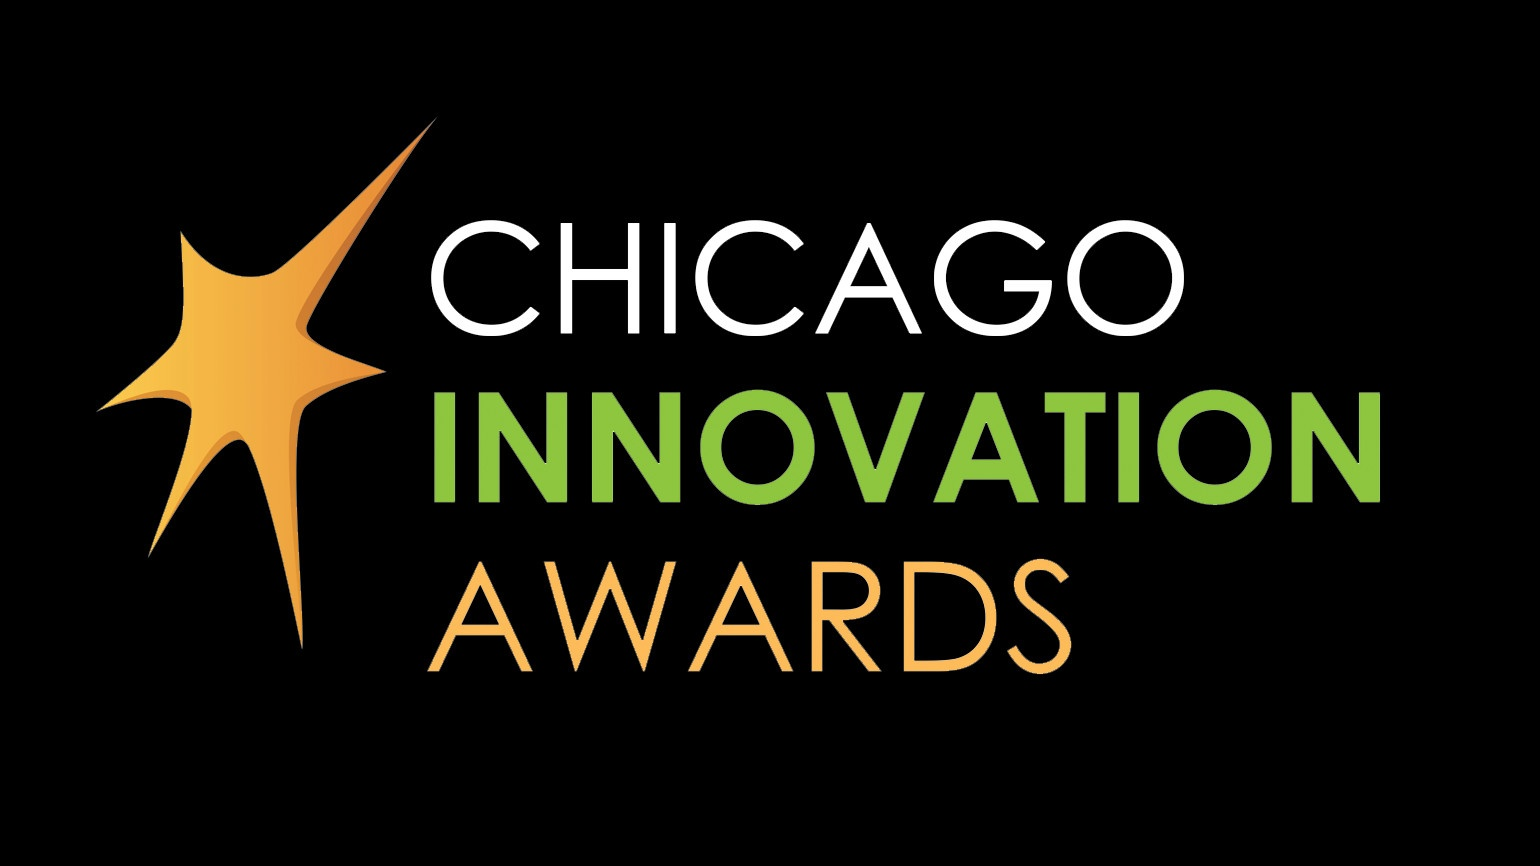 chicago_innovation_awards.jpg